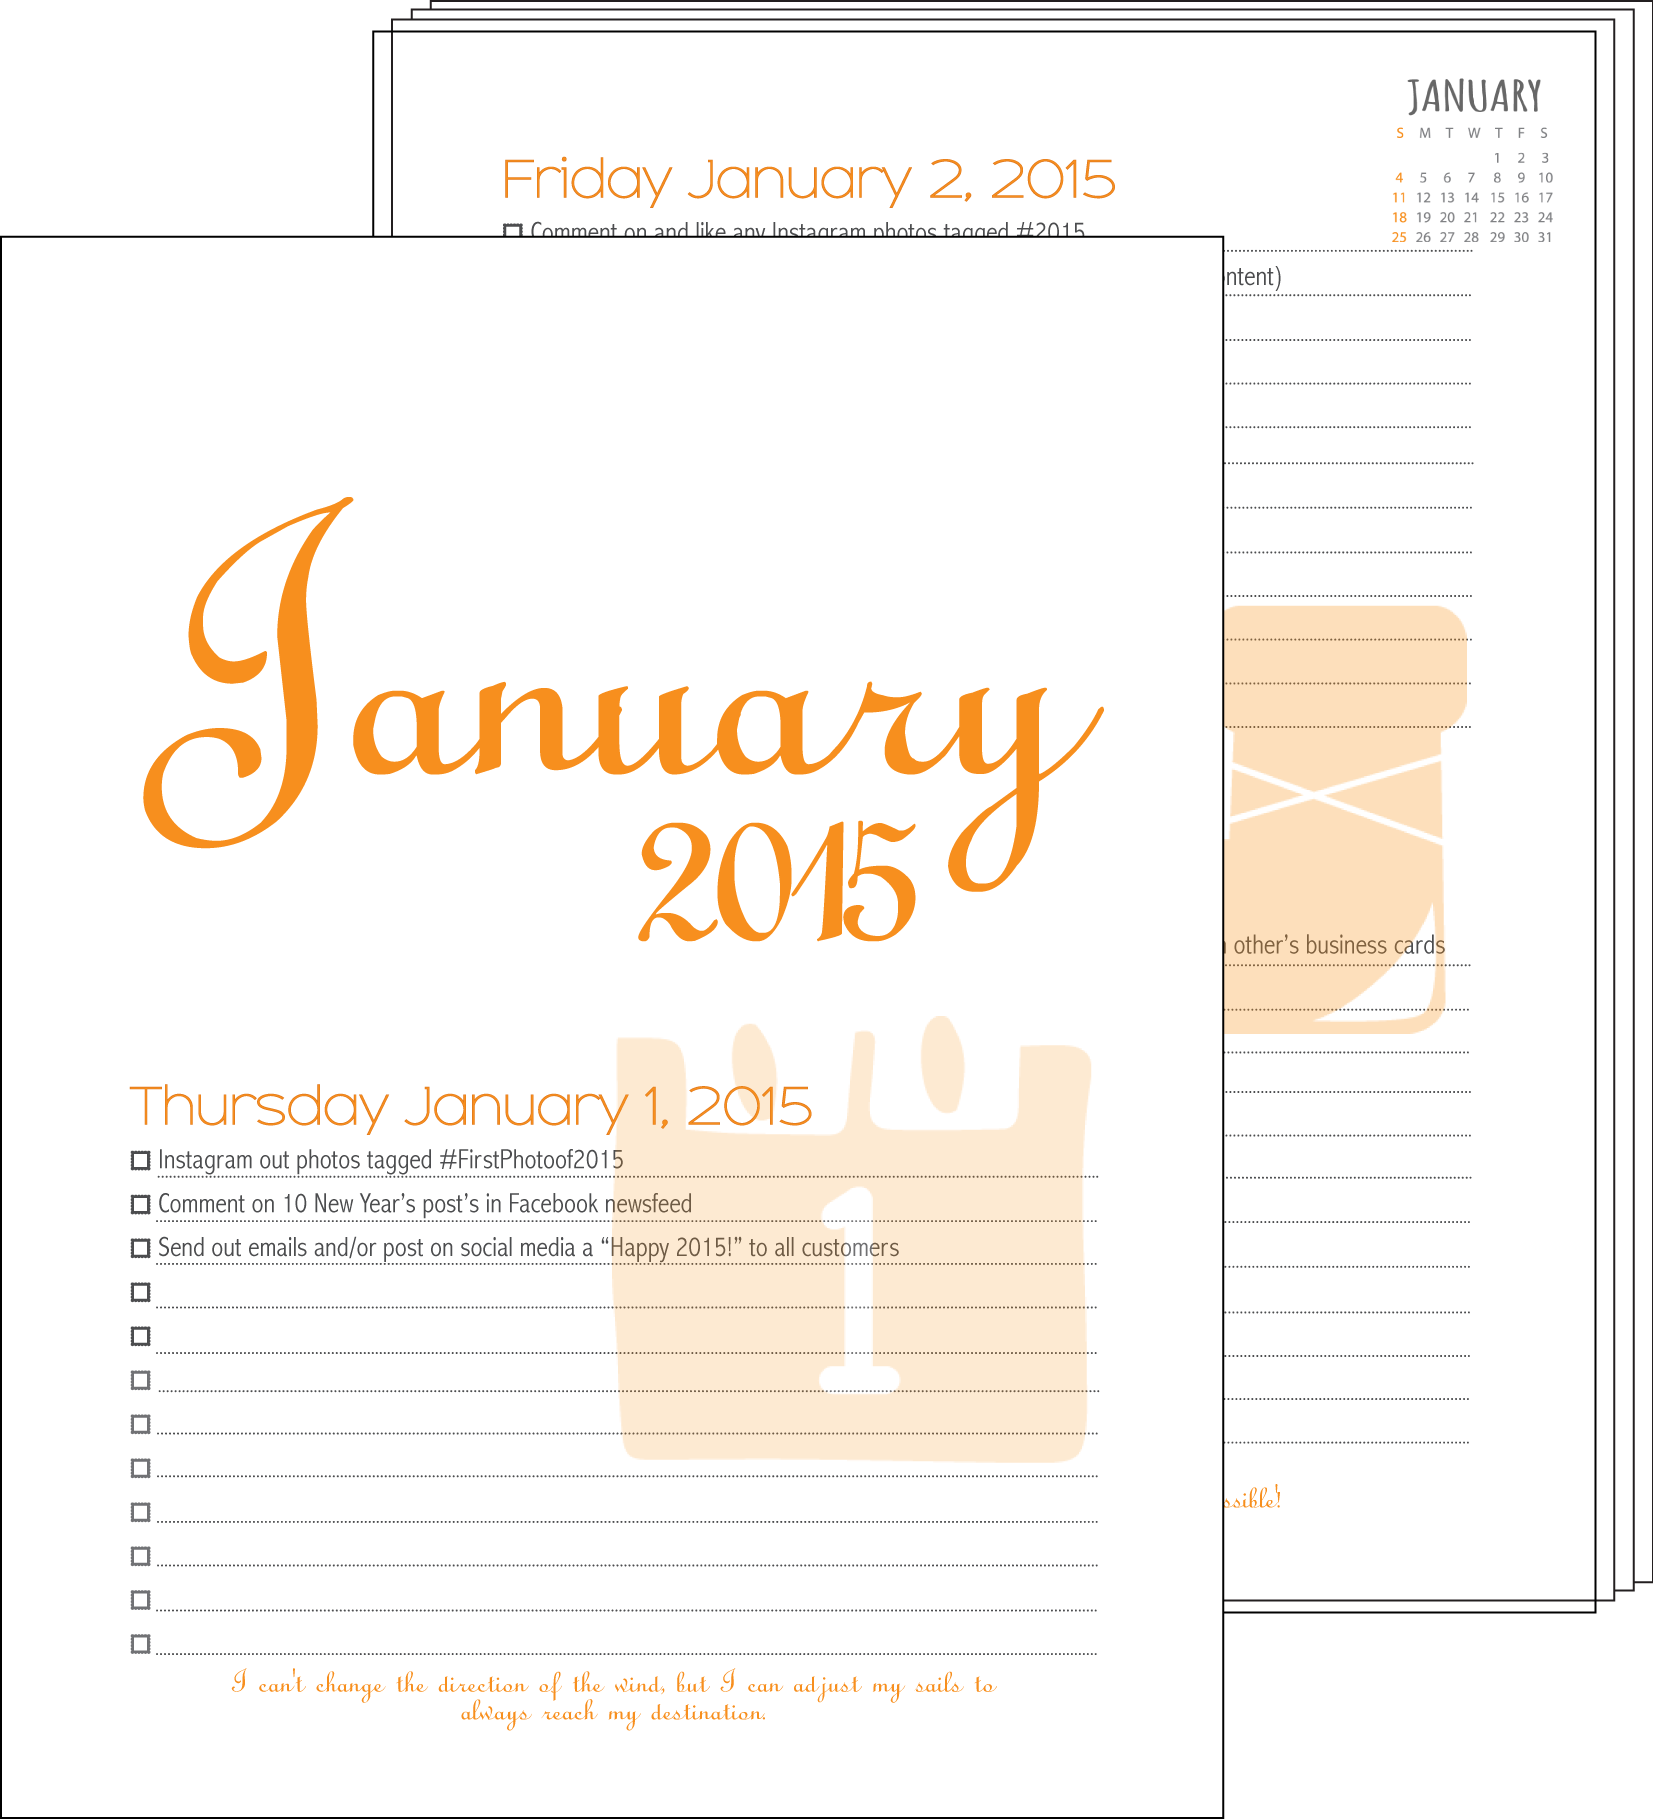 Marketing Calendar for 2015